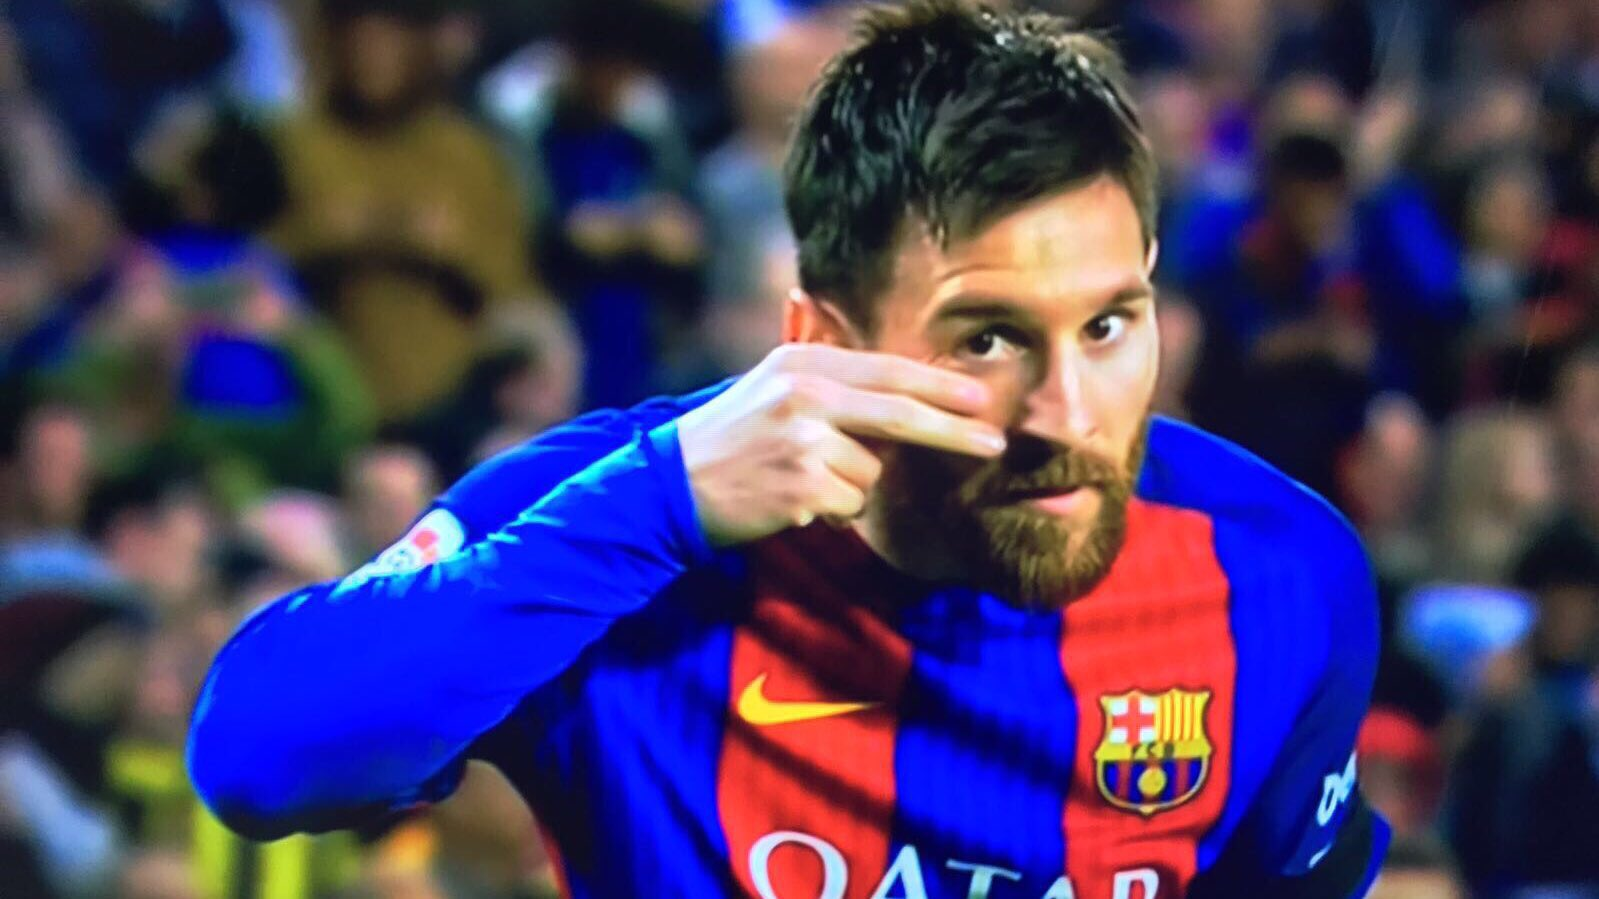 Messi dedicated his first goal against Seville to the fight against childhood cancer